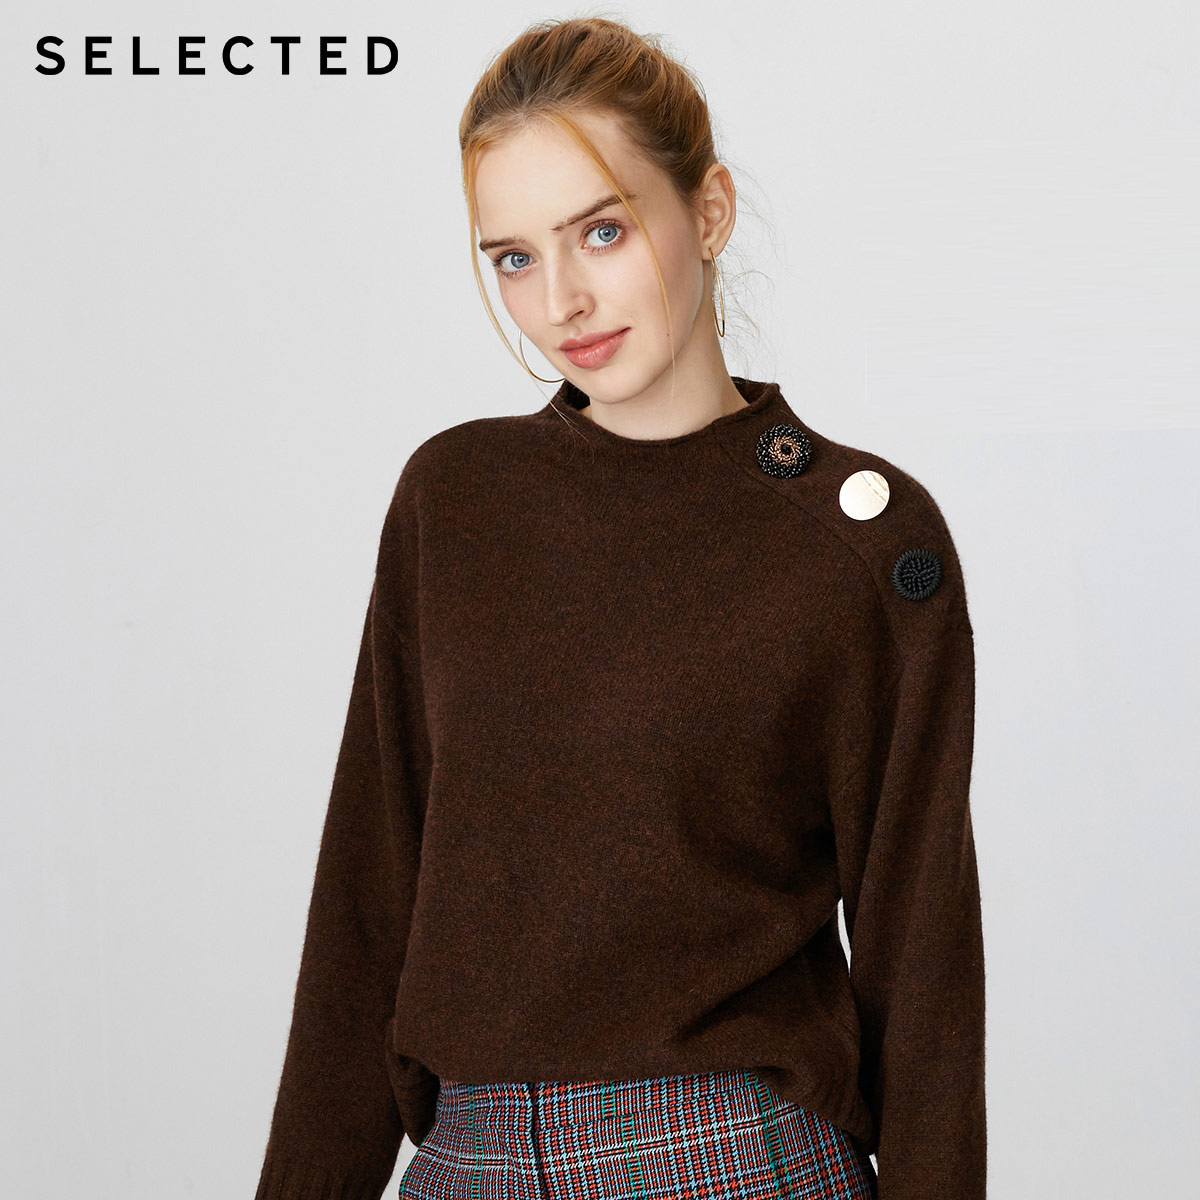 SELECTED Women's Loose Fit Wool-blend Knit Sweater S|419413507